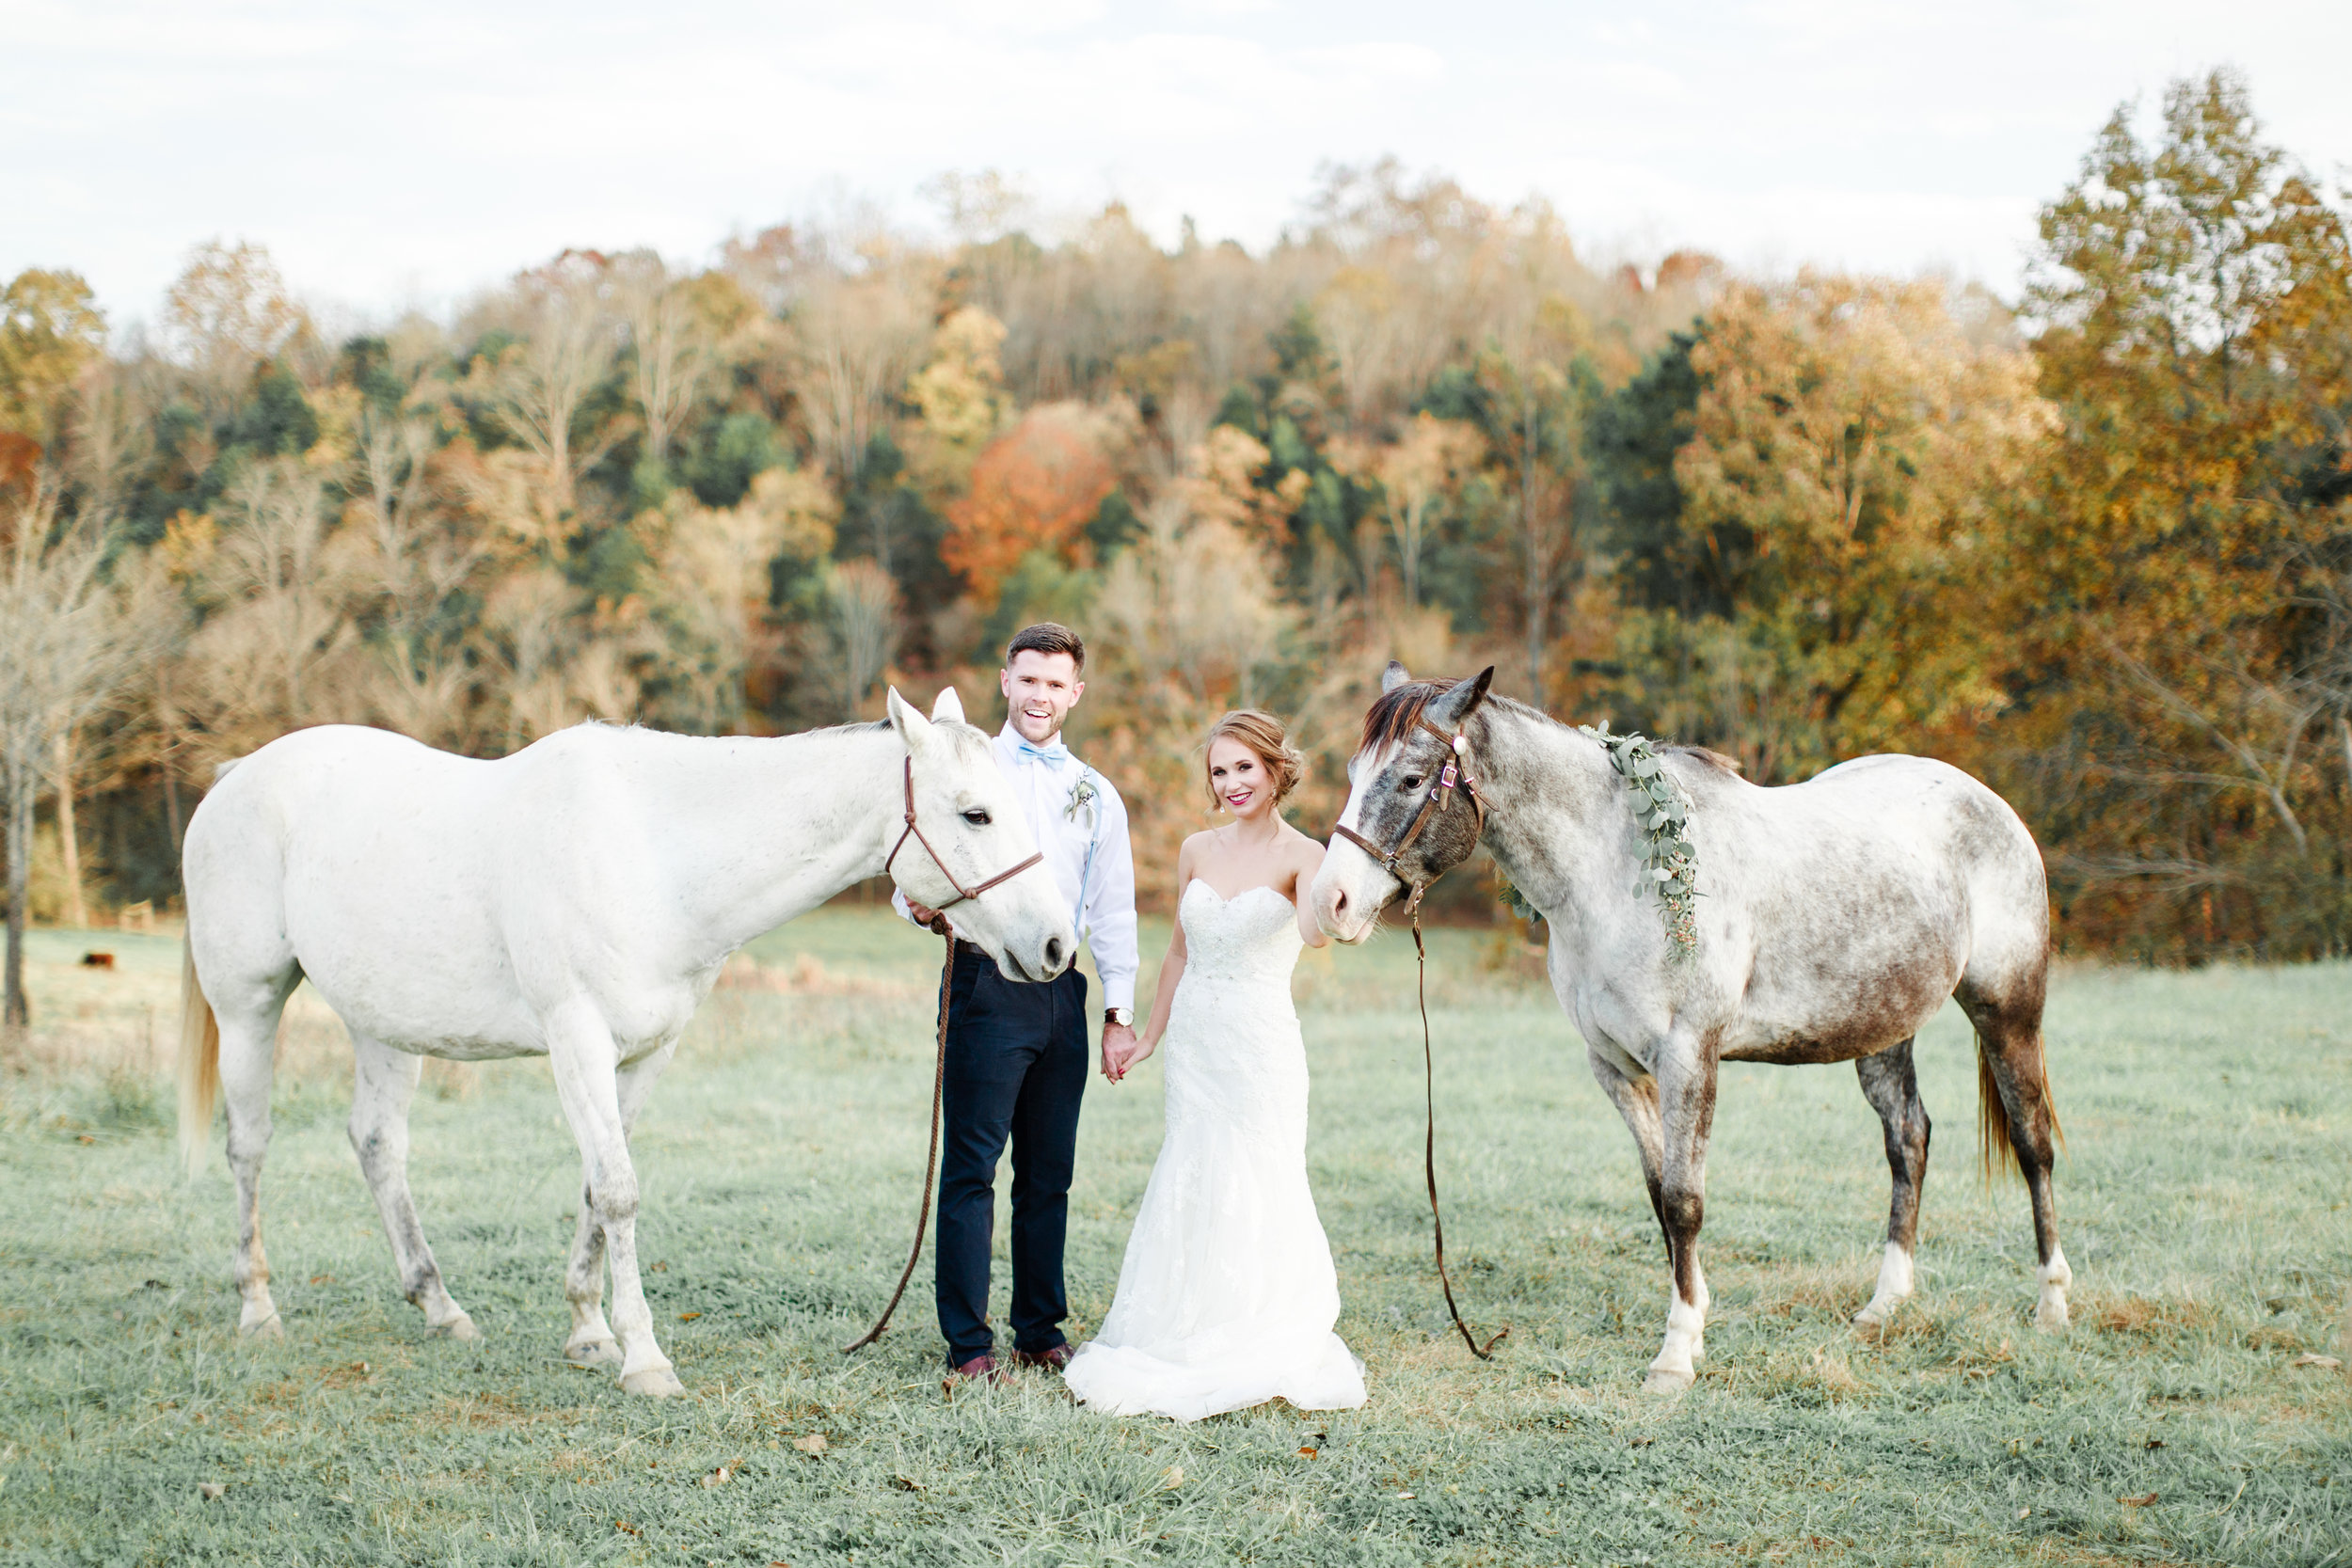 Allyography_WinterWeddingStyledPortraiture_BodockFarms_BurkesvilleKentucky-334.jpg